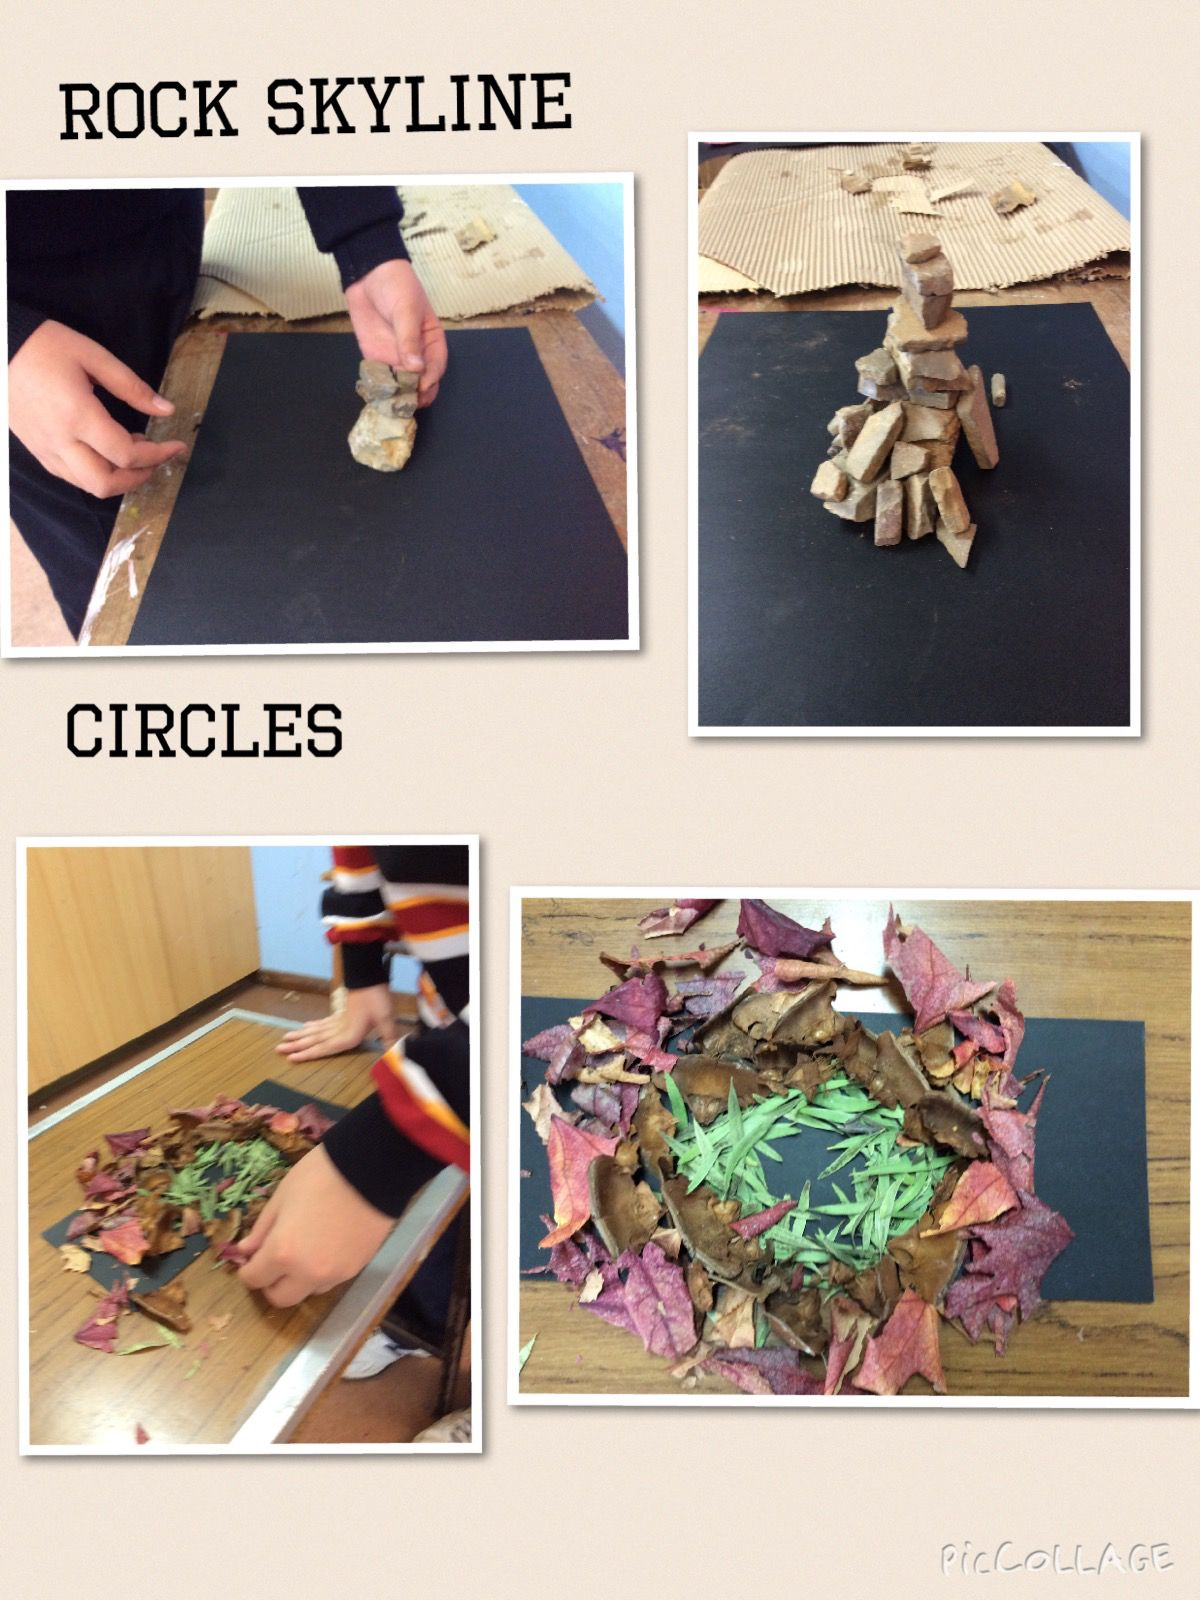 Rock sculpture by year 7 student Cezar.